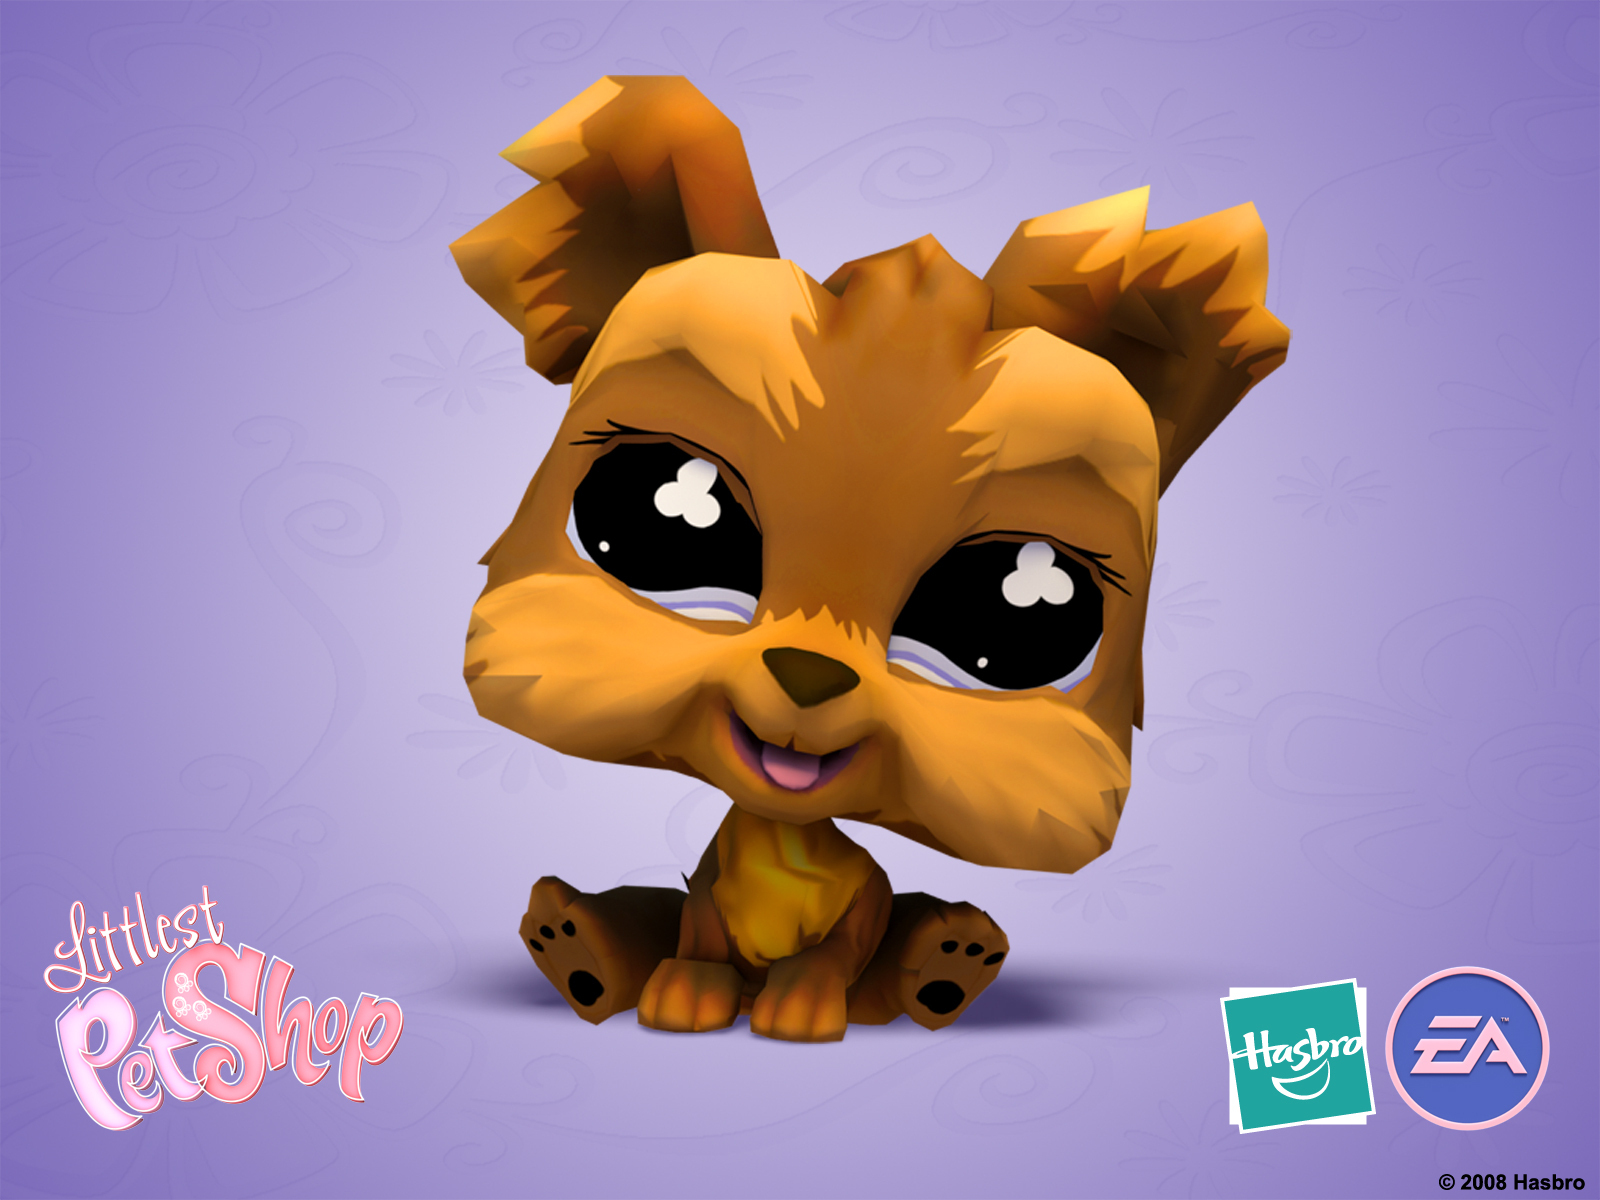 littlest oet shop